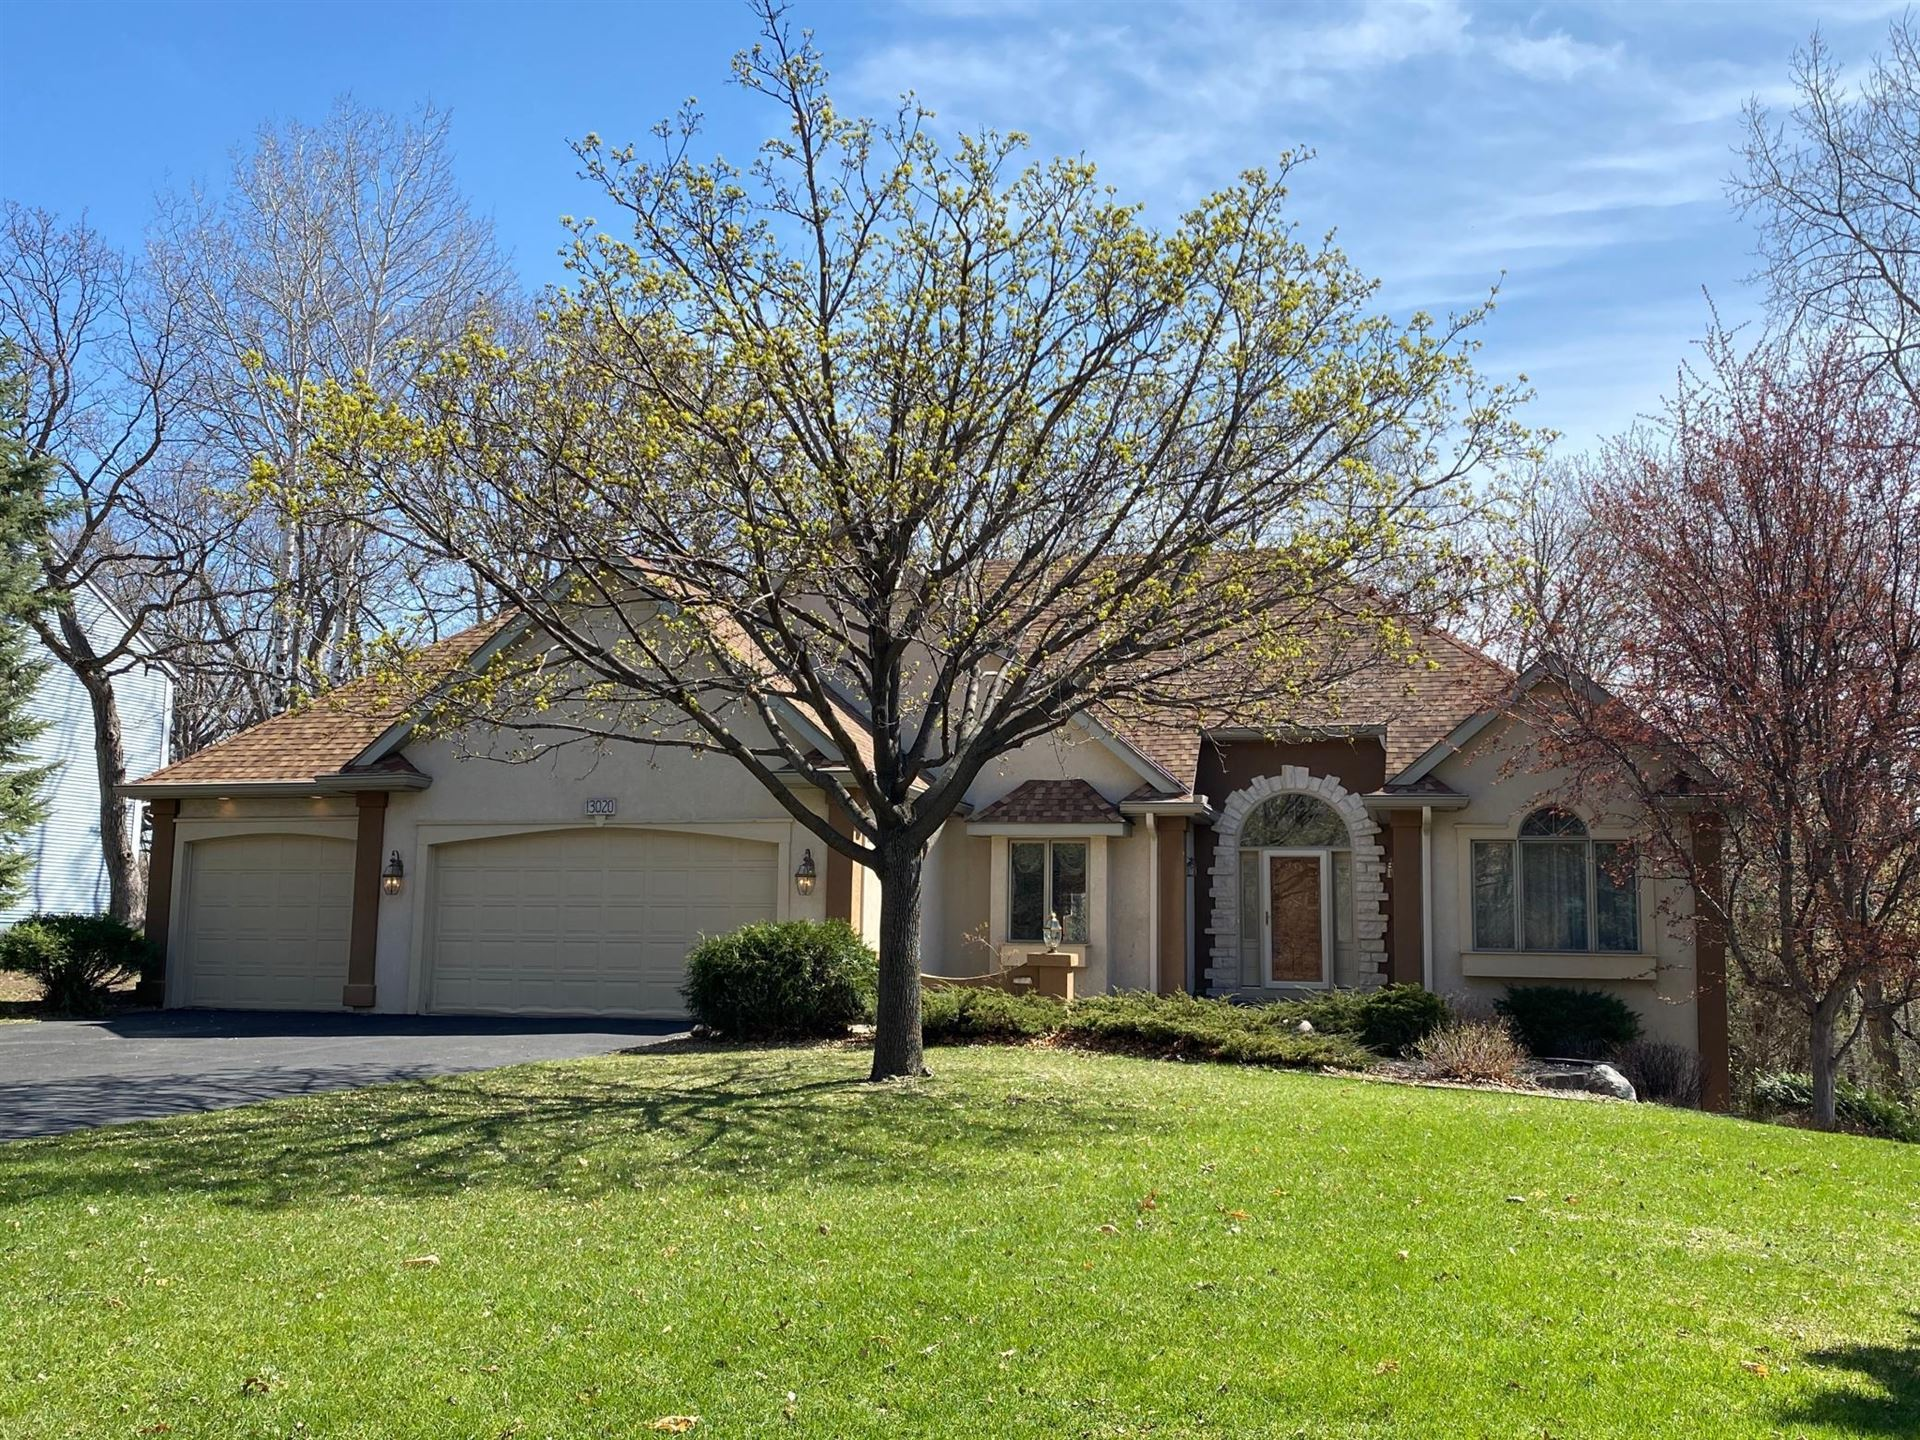 Photo of 13020 Hershey Way, Apple Valley, MN 55124 (MLS # 5742212)